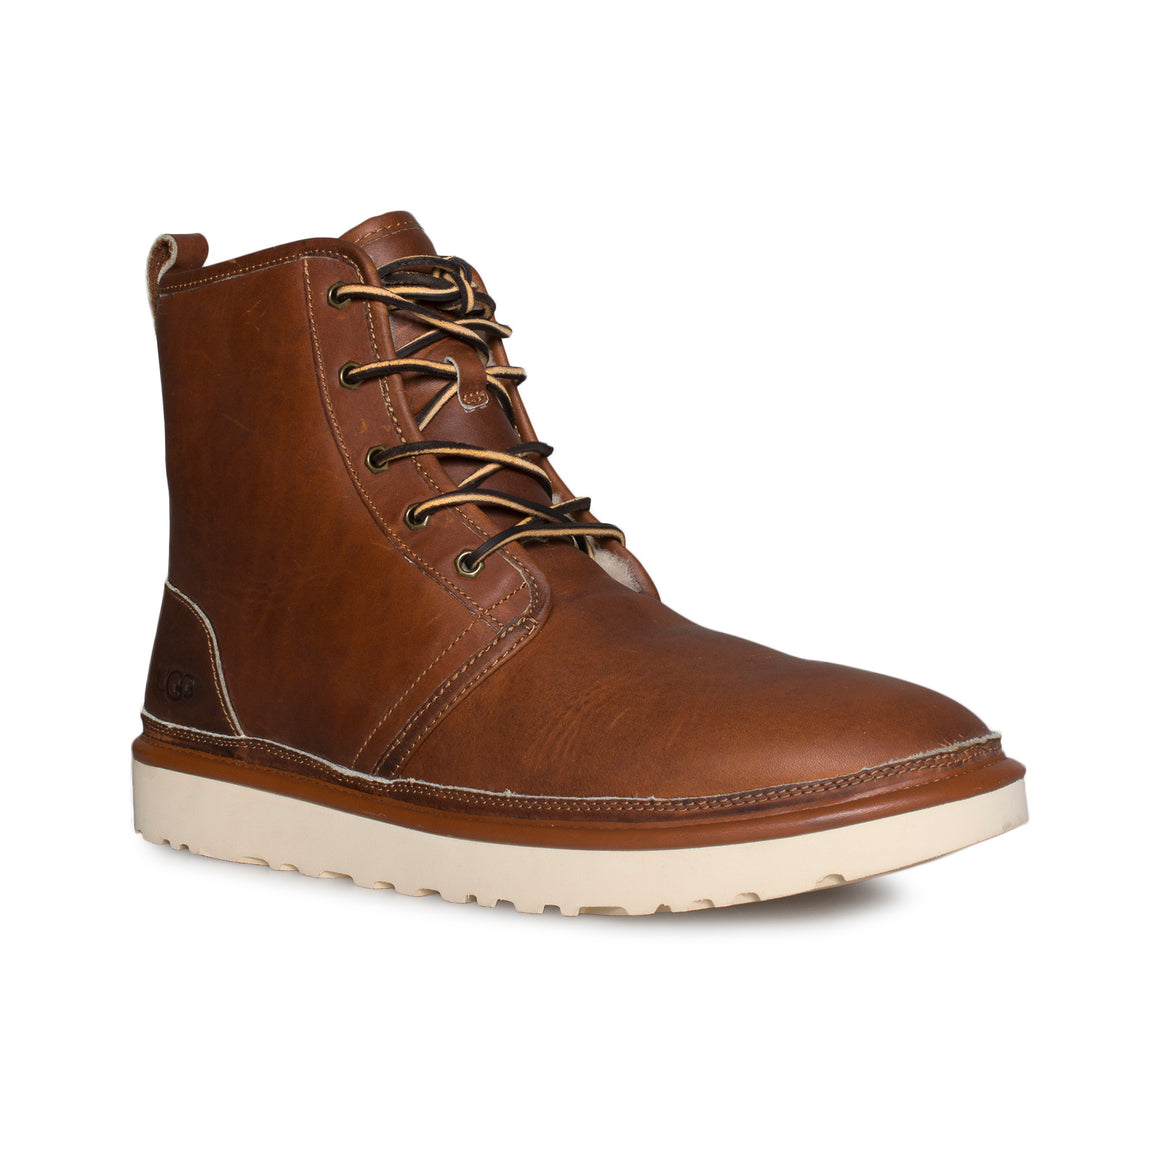 UGG Harkley Pinnacle Tan Boots - Men's